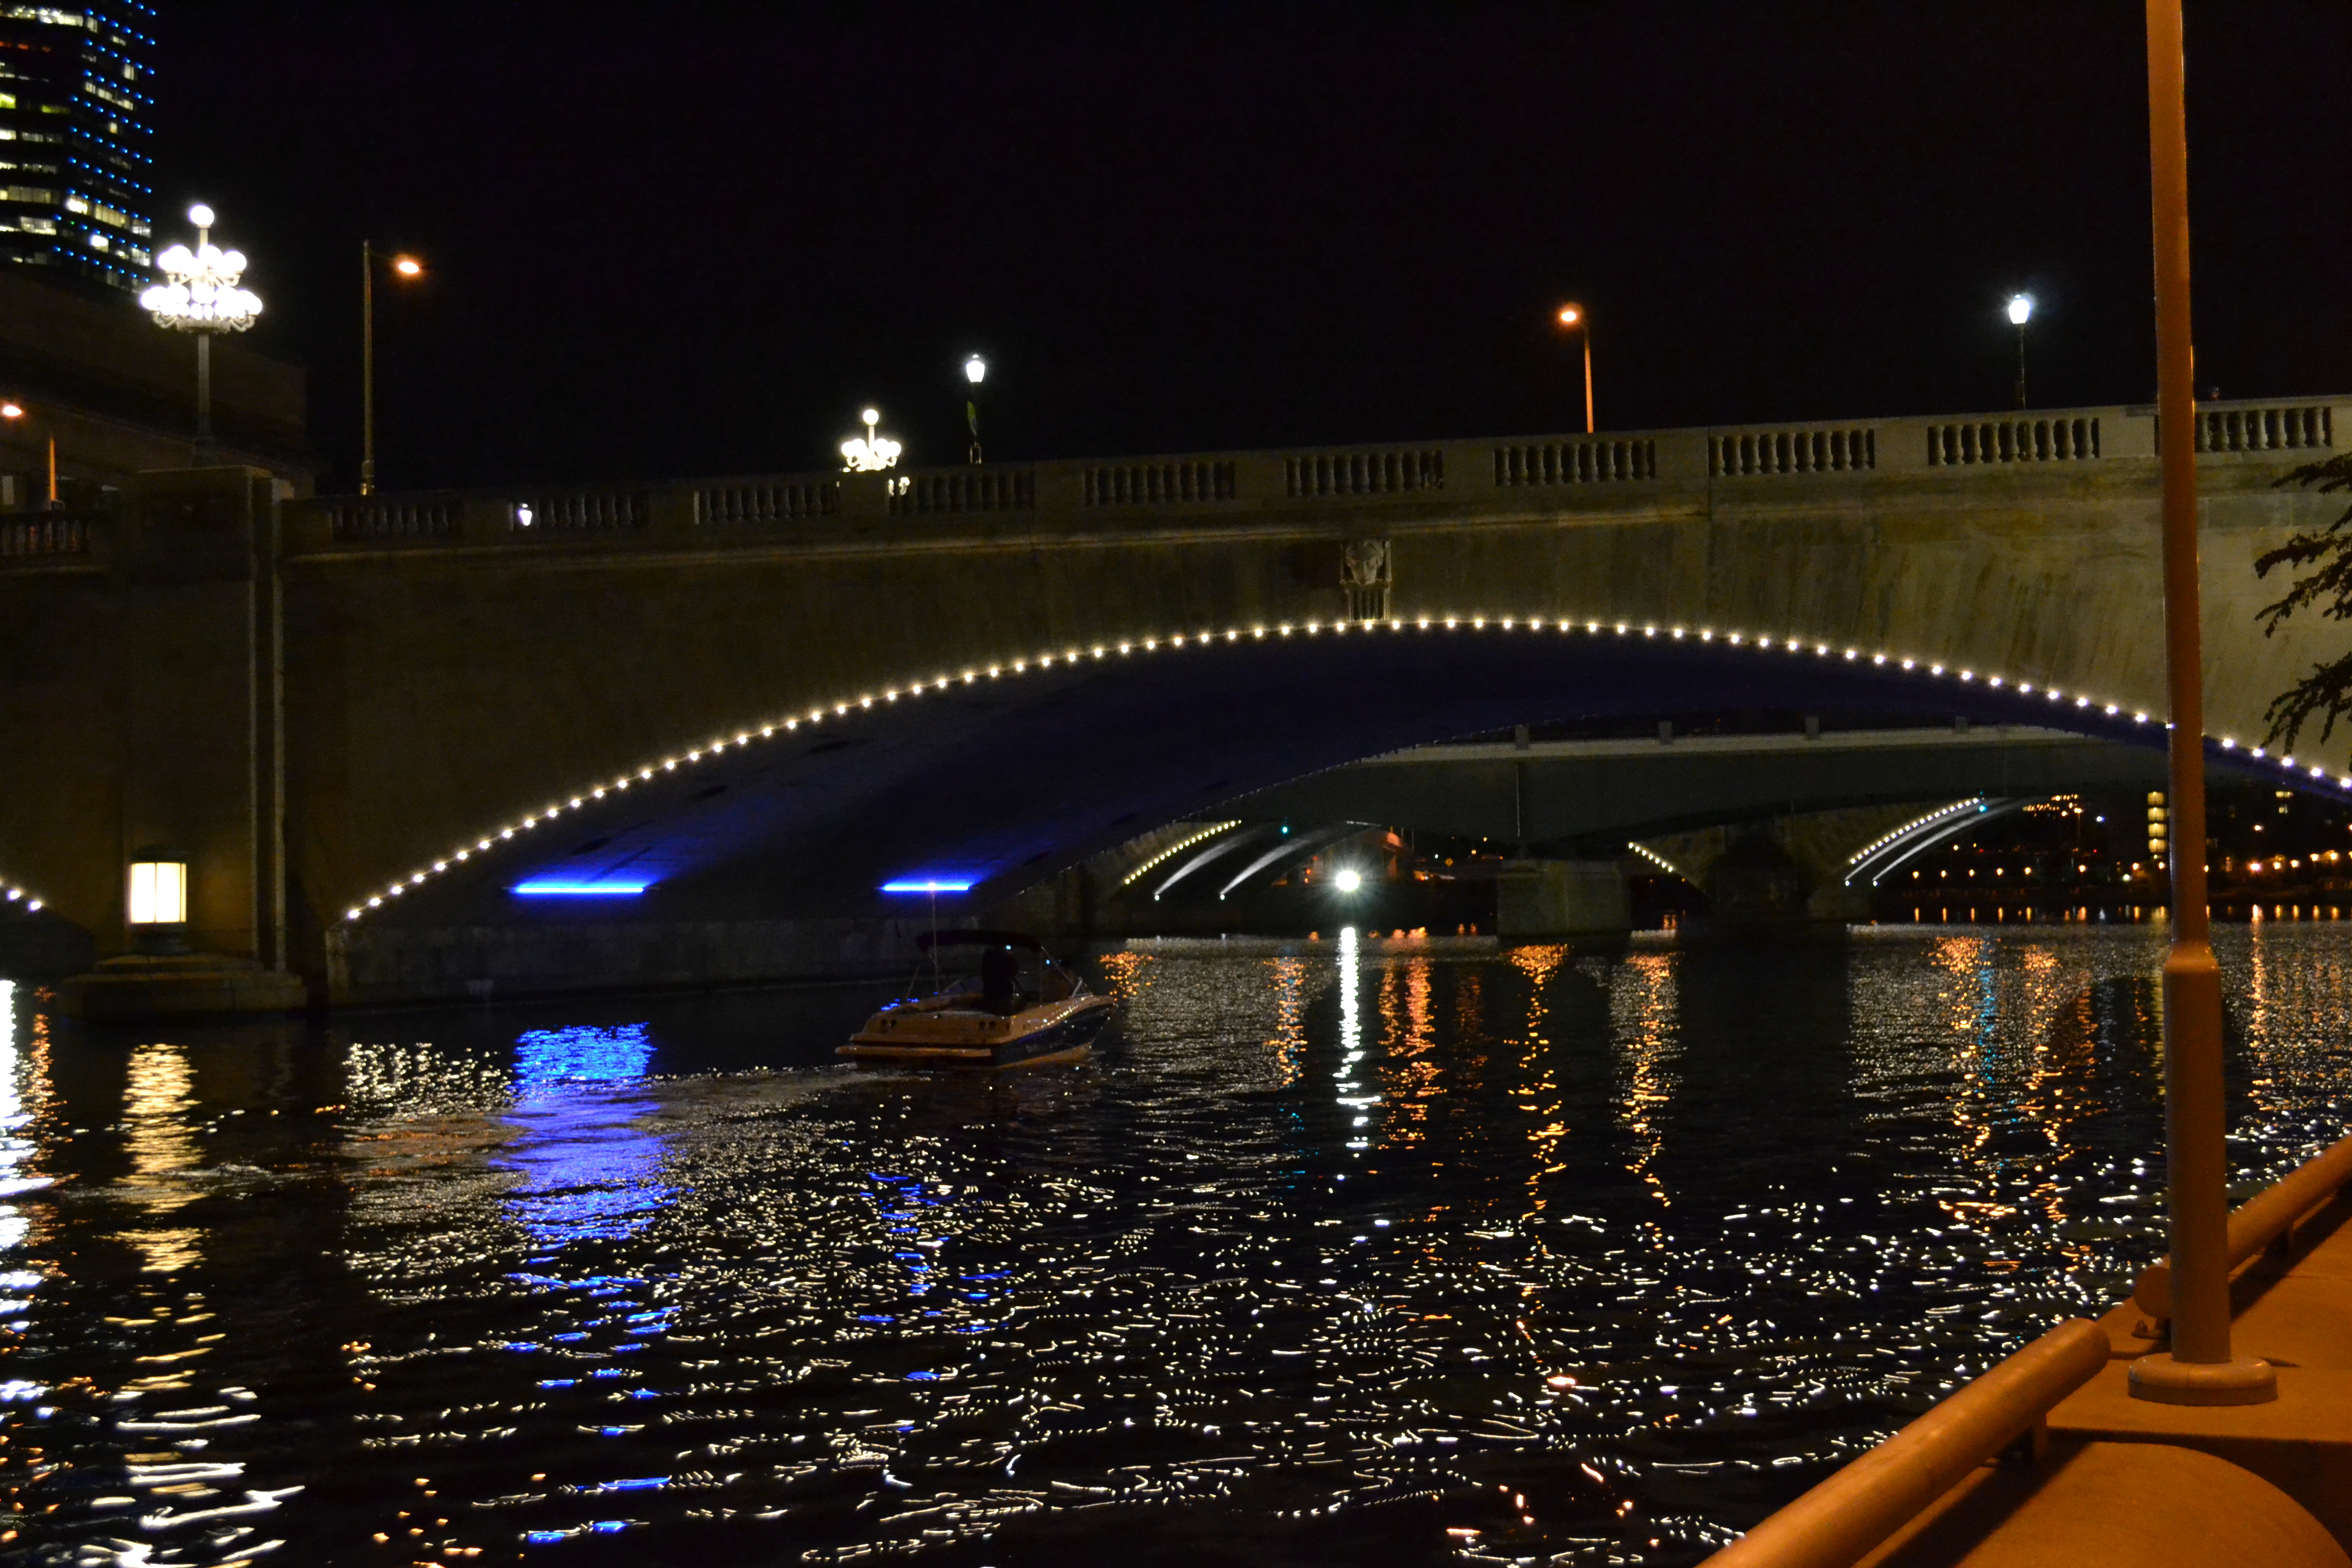 A boat cruised beneath the illuminated bridges as the lights danced on the water